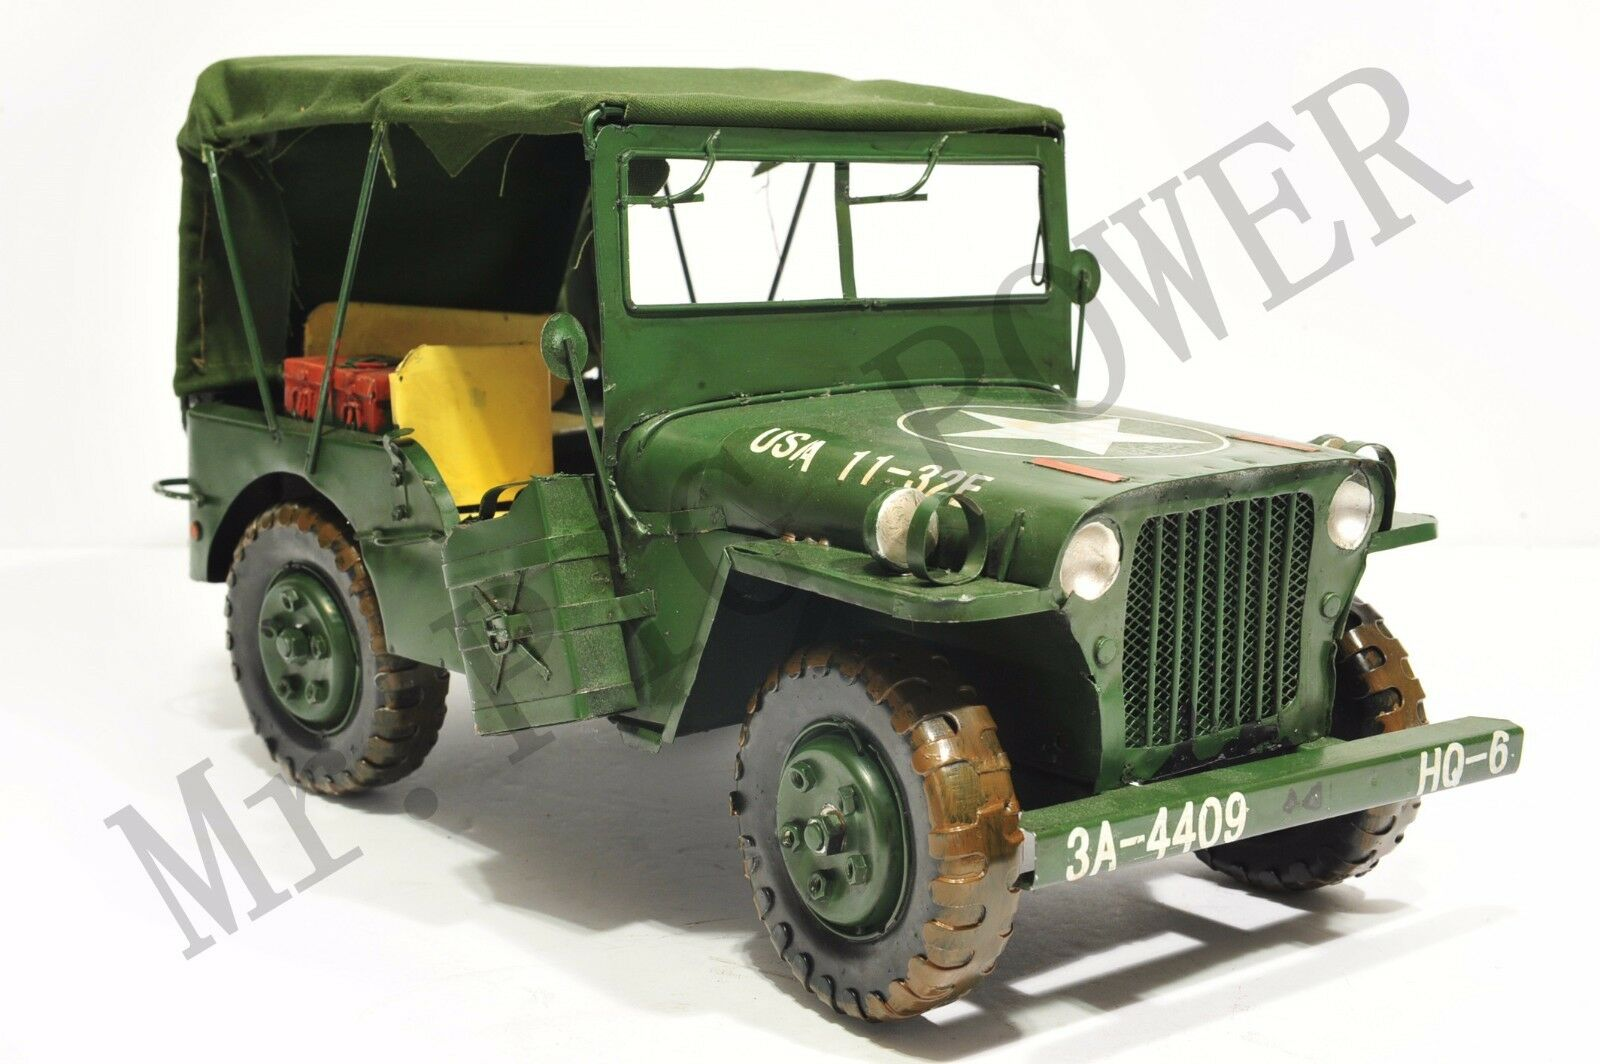 Handmade World War II US Military Vehicle Tinplate Antique Style Metal Model